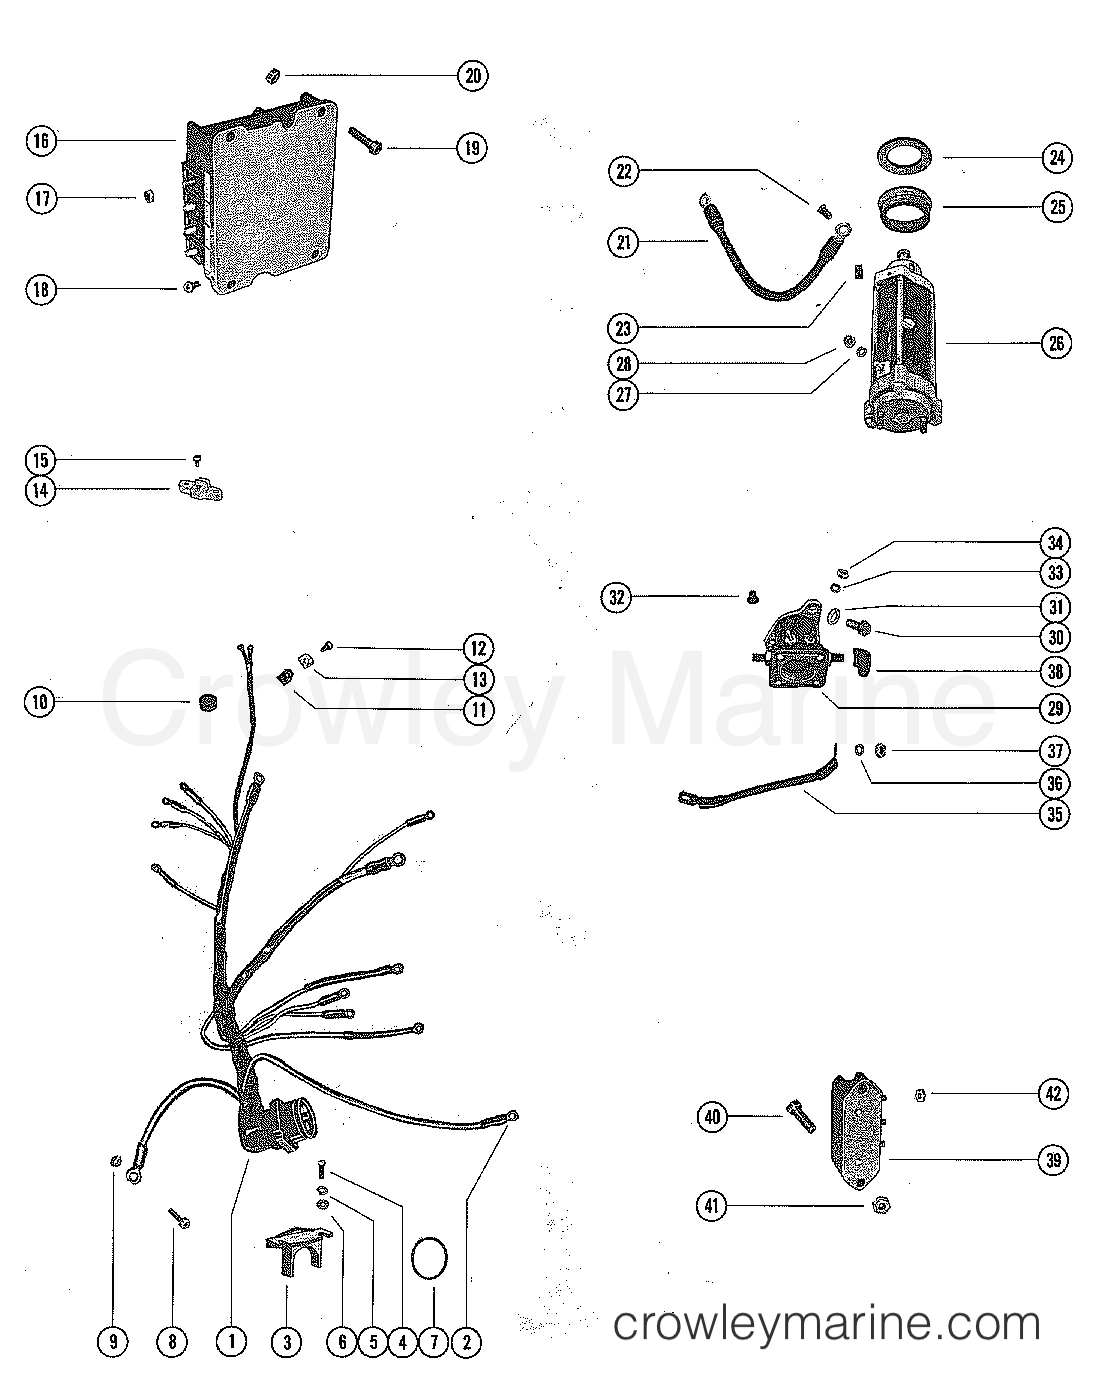 2000 F350 Replacement Wiring Harness : 36 Wiring Diagram